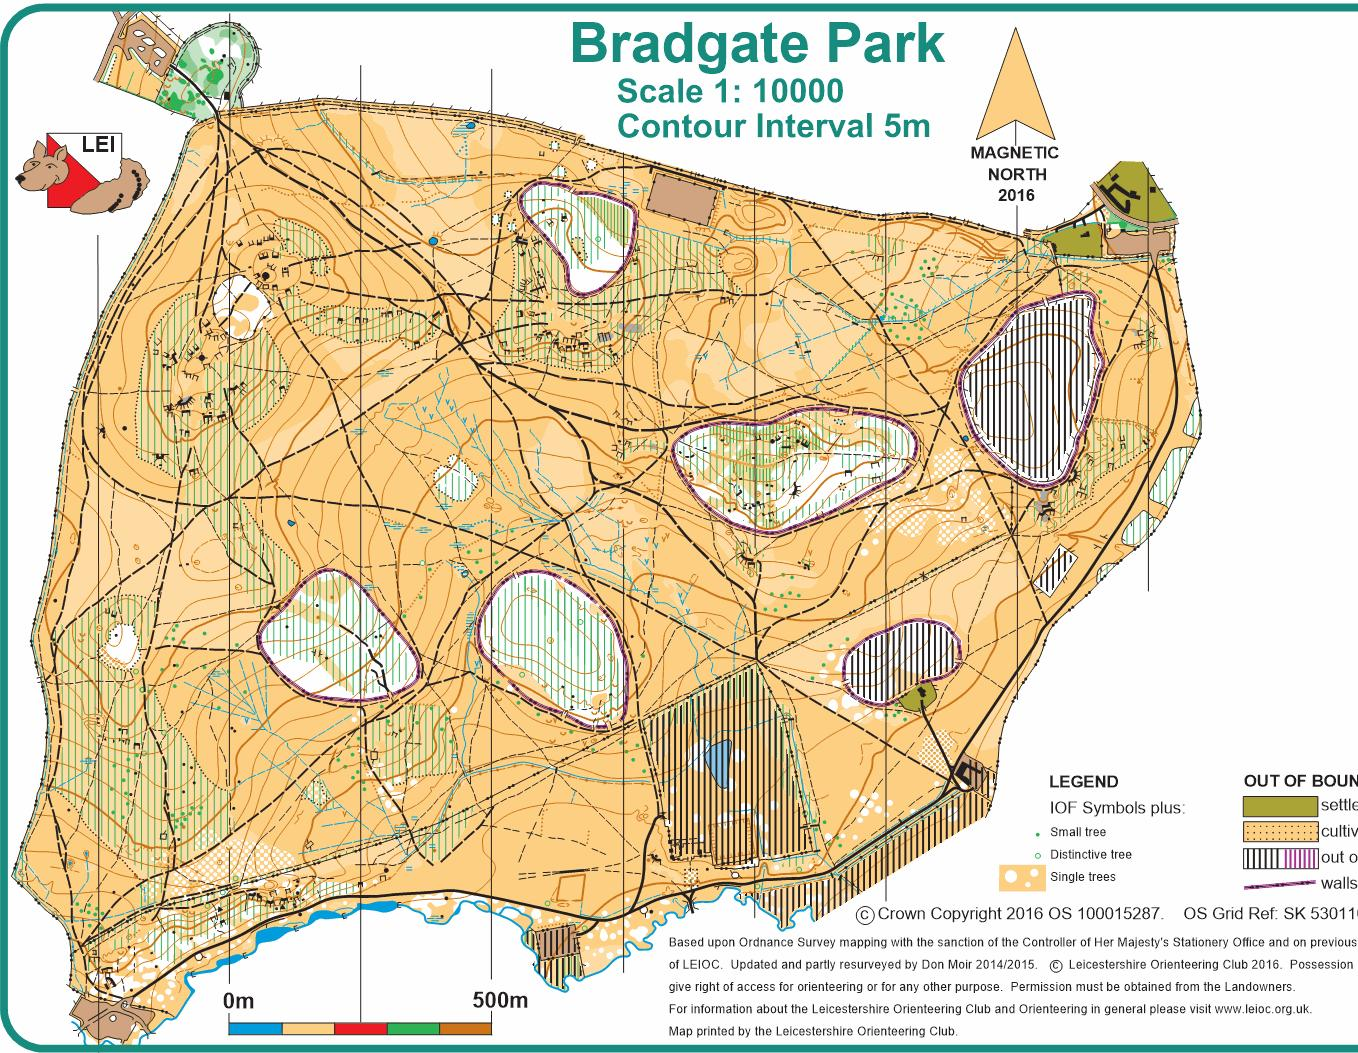 Bradgate eml november 13th 2016 orienteering map from leicester oc view map jpg biocorpaavc